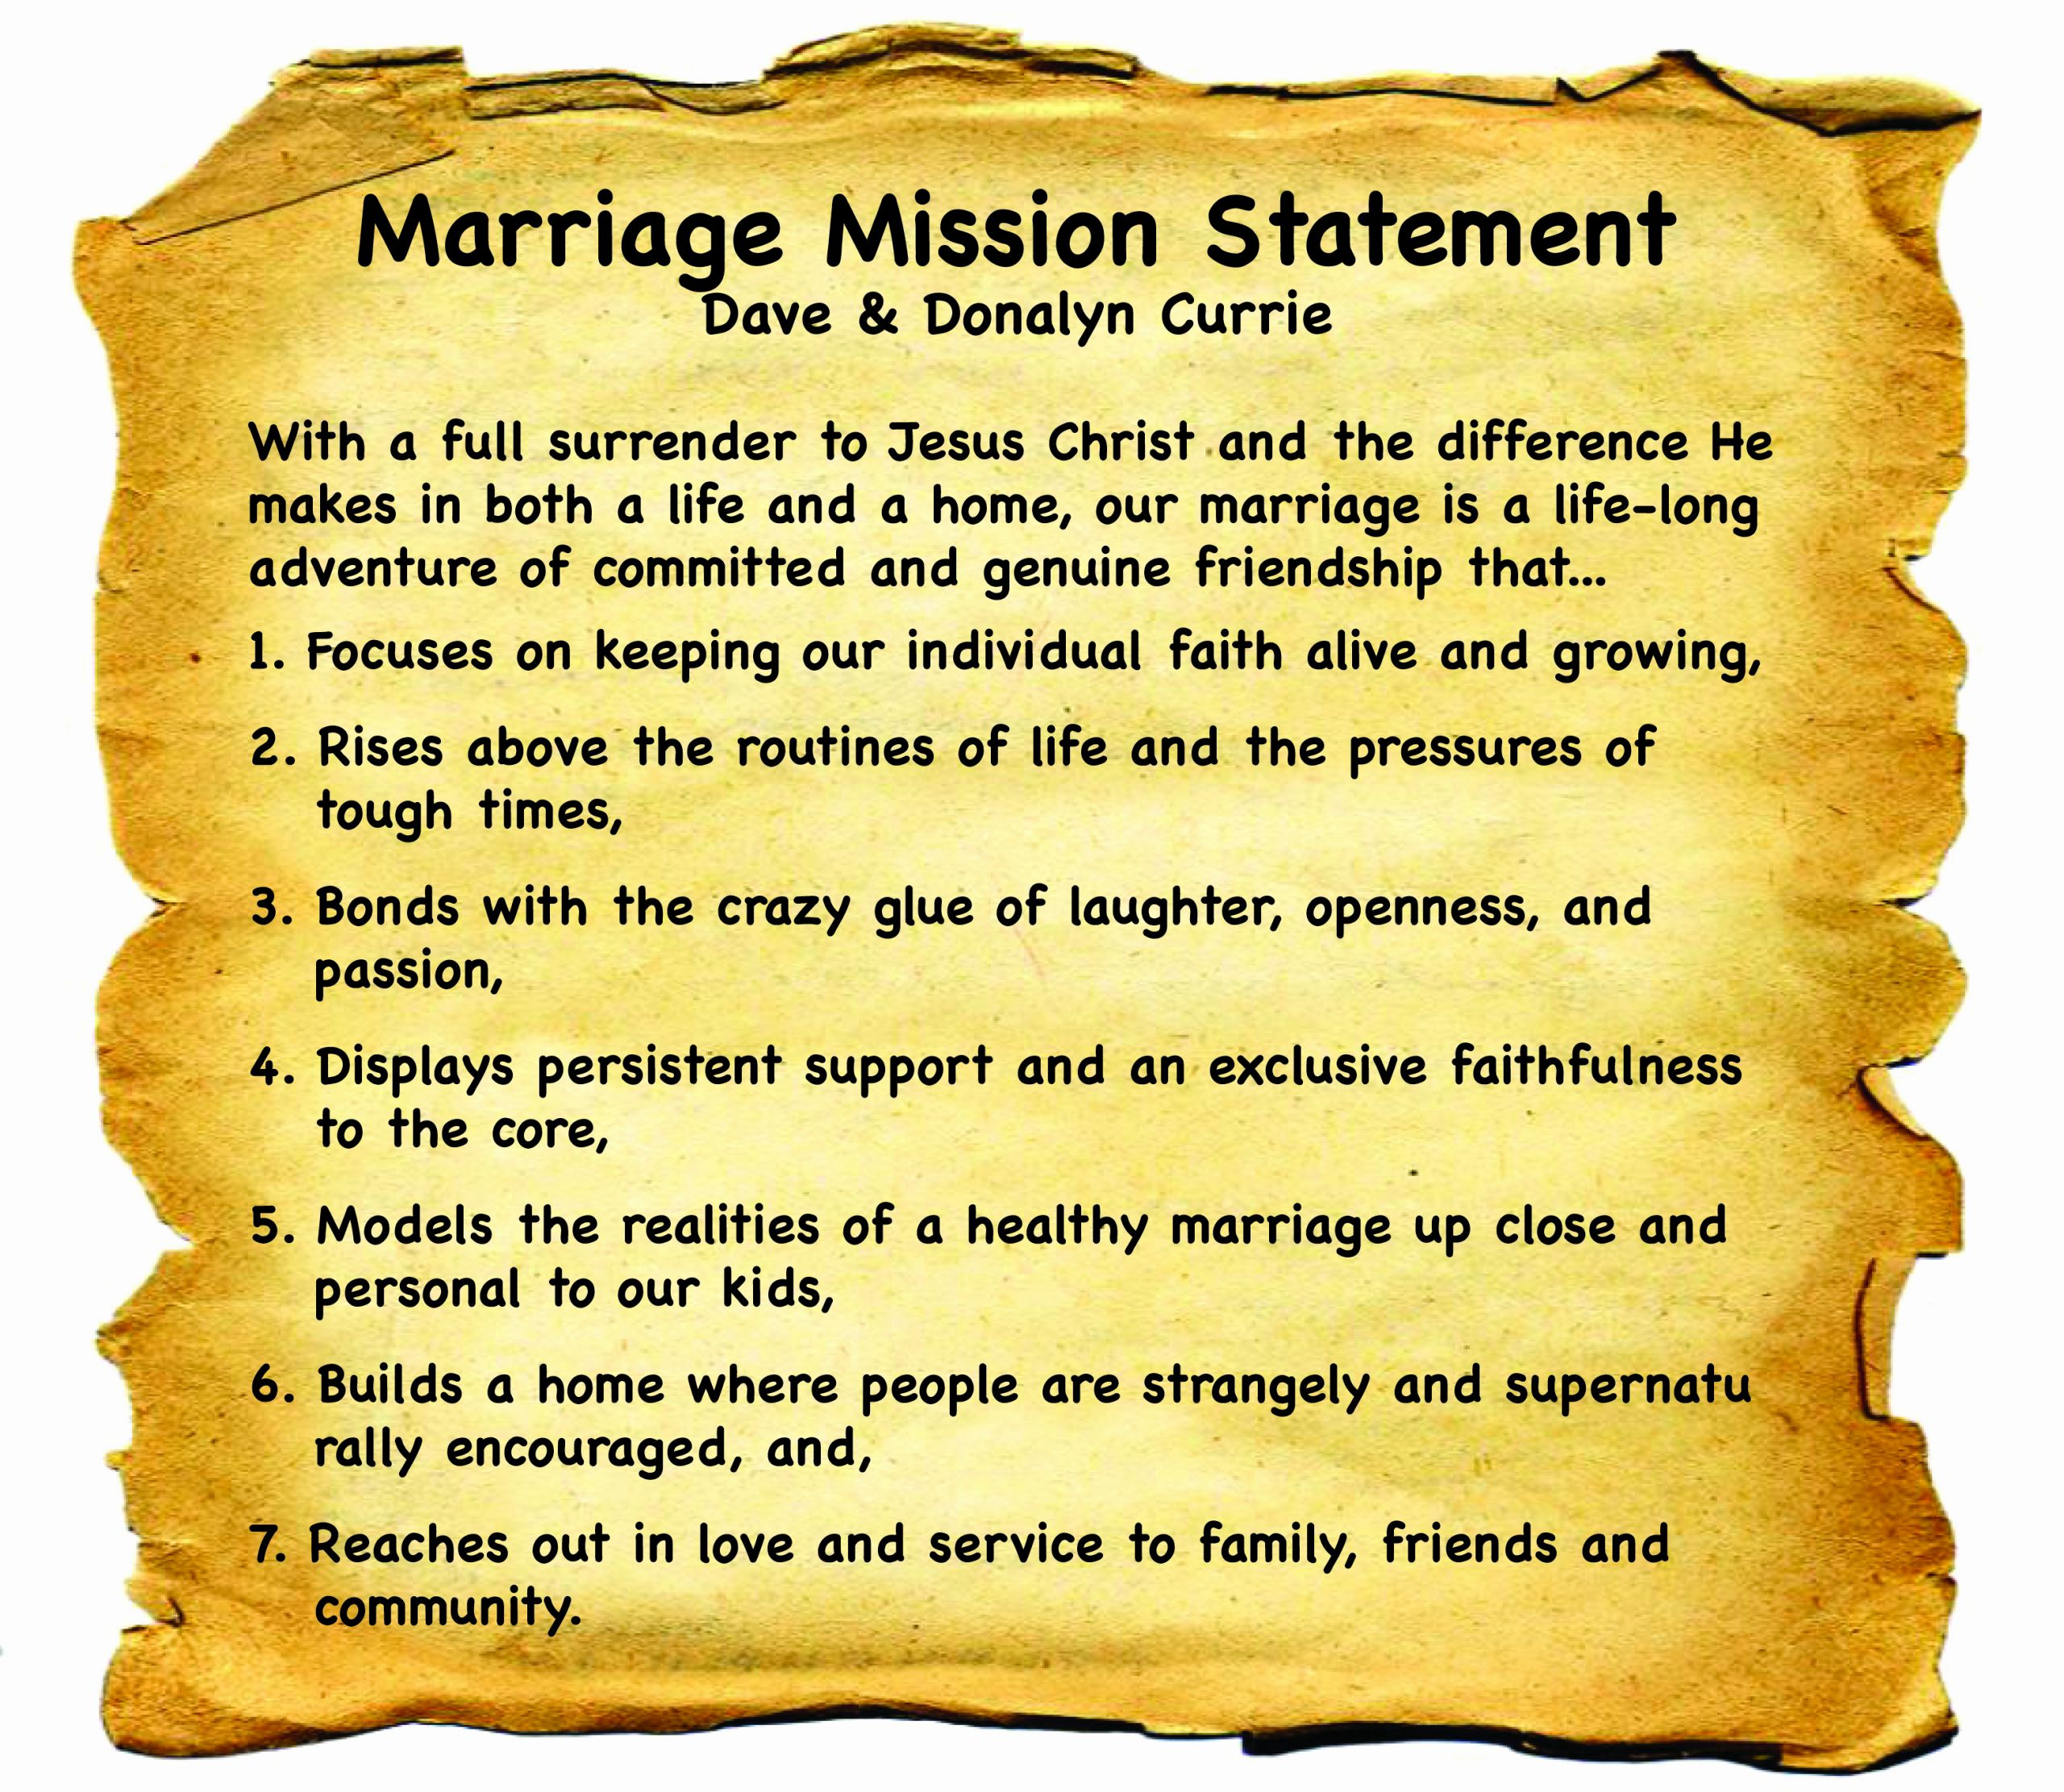 developing a marriage mission statement